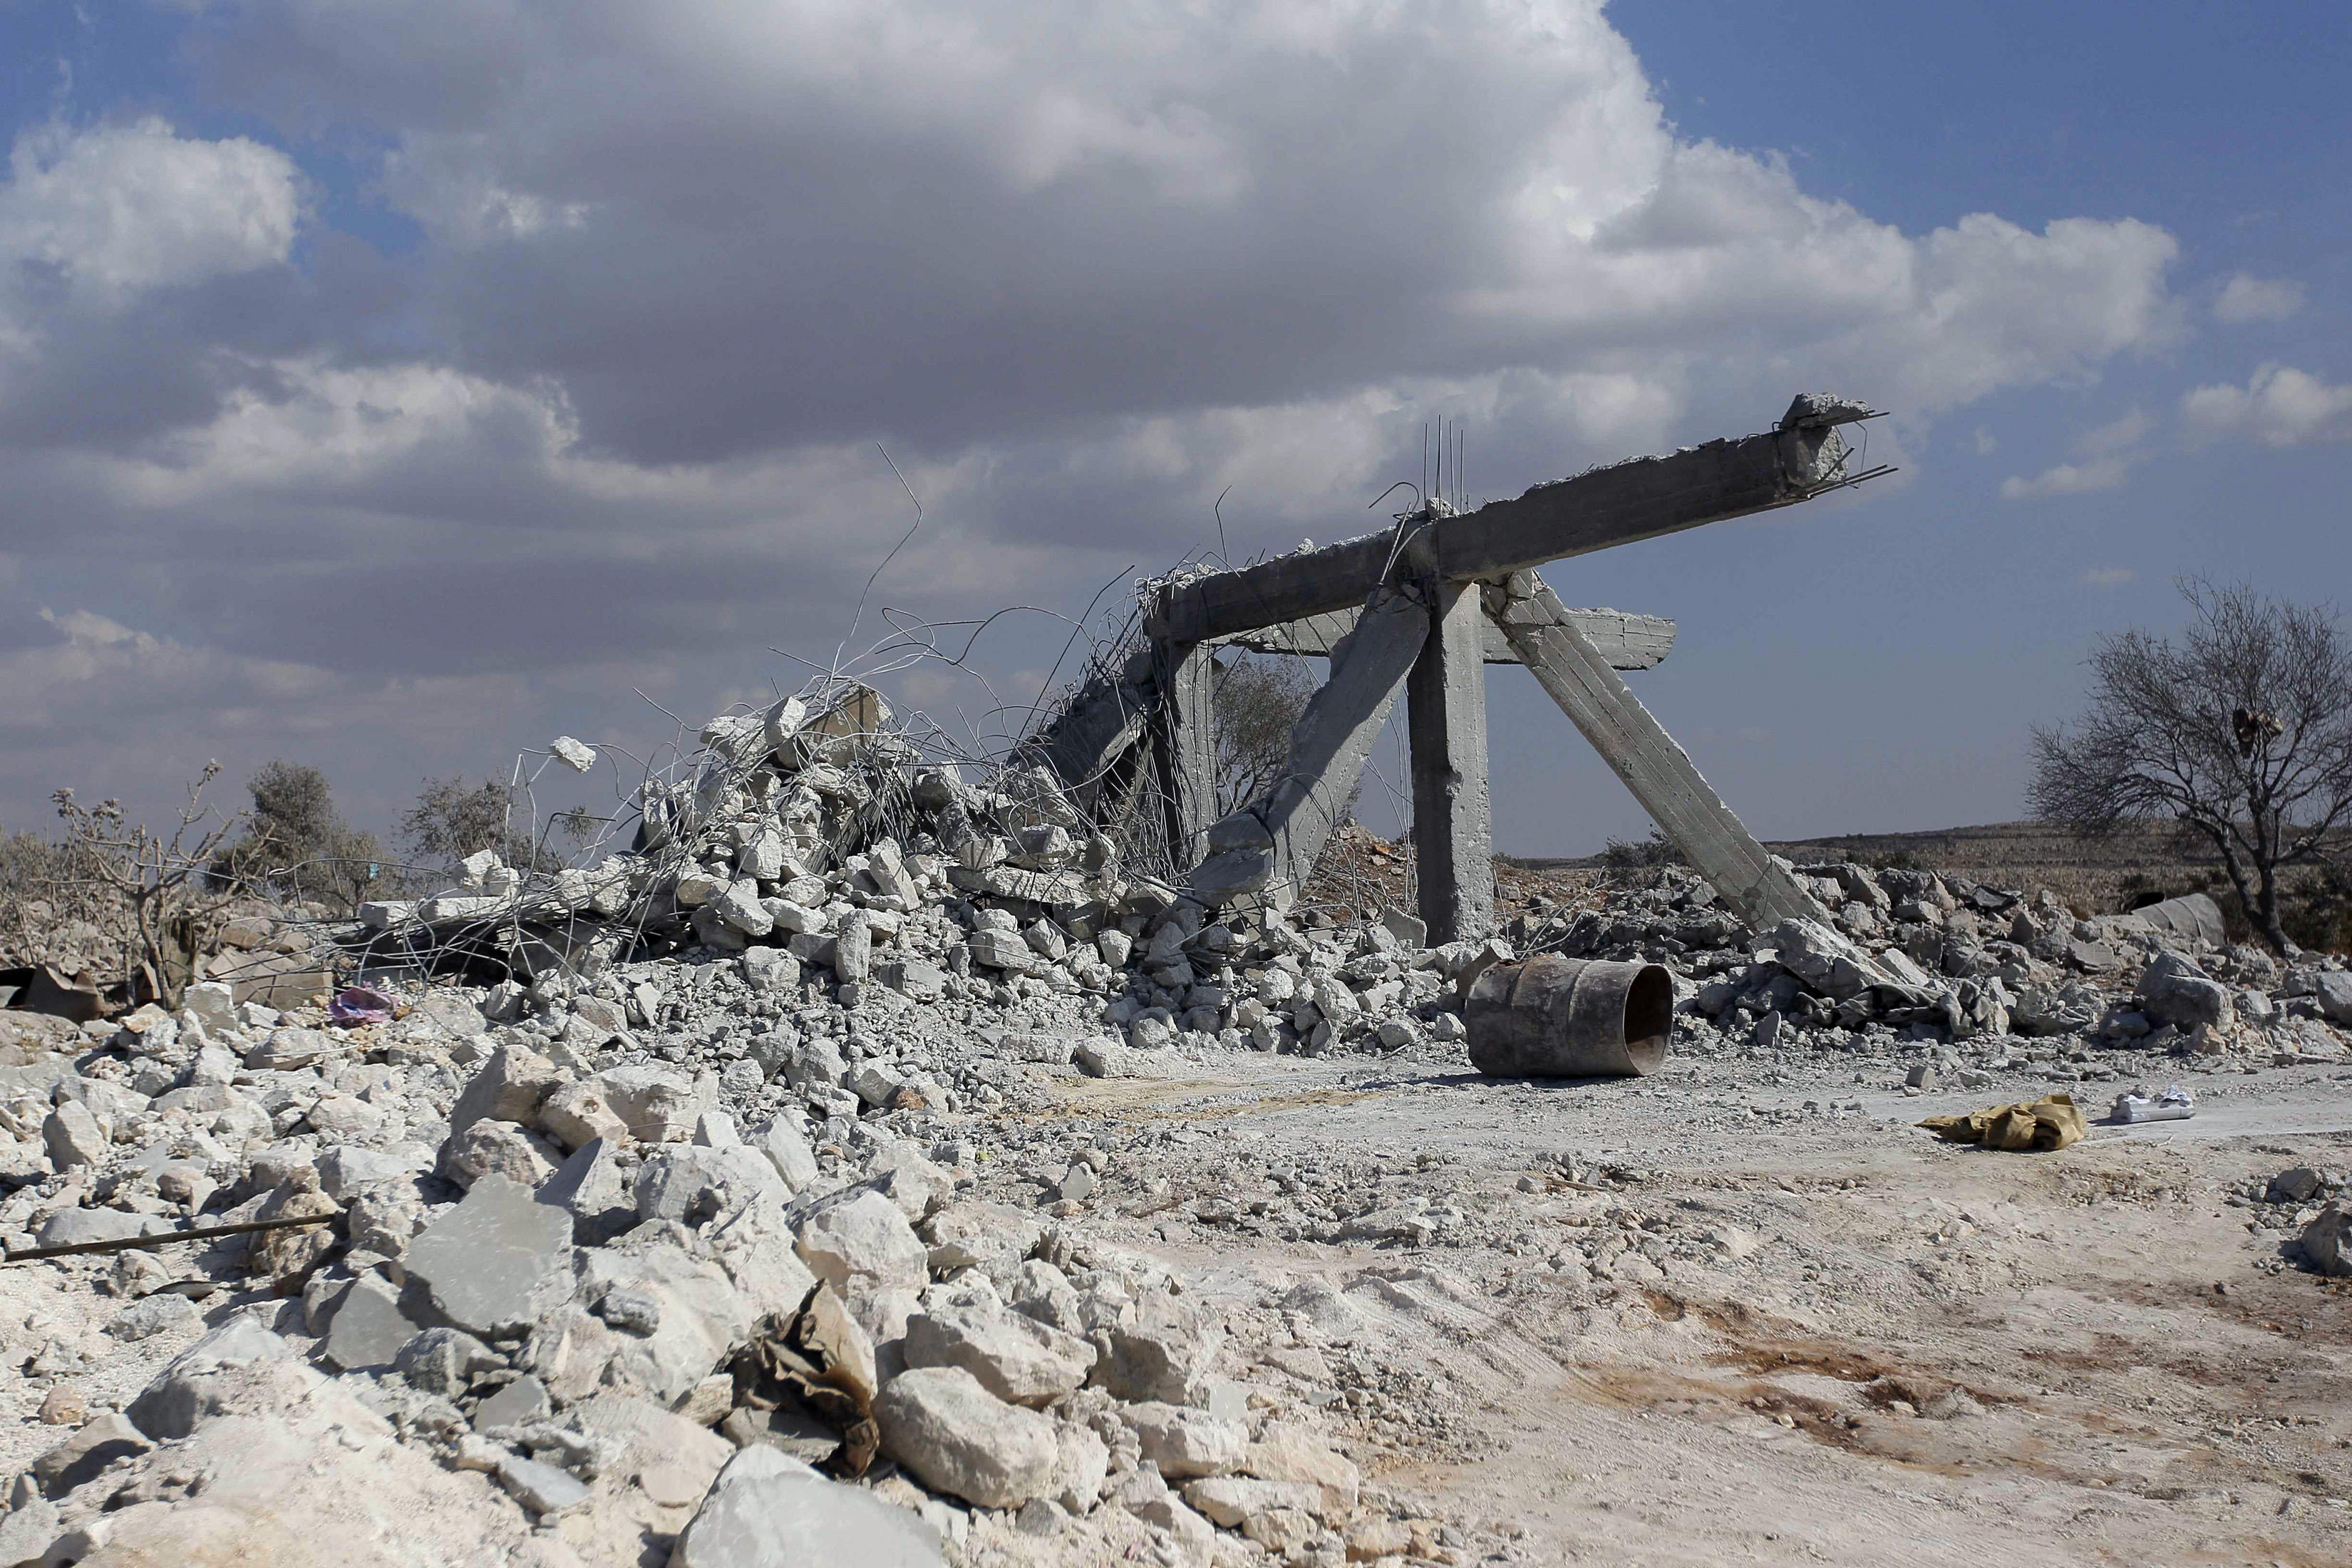 A damaged site is seen in what activists say was a U.S. strike, in Kfredrian